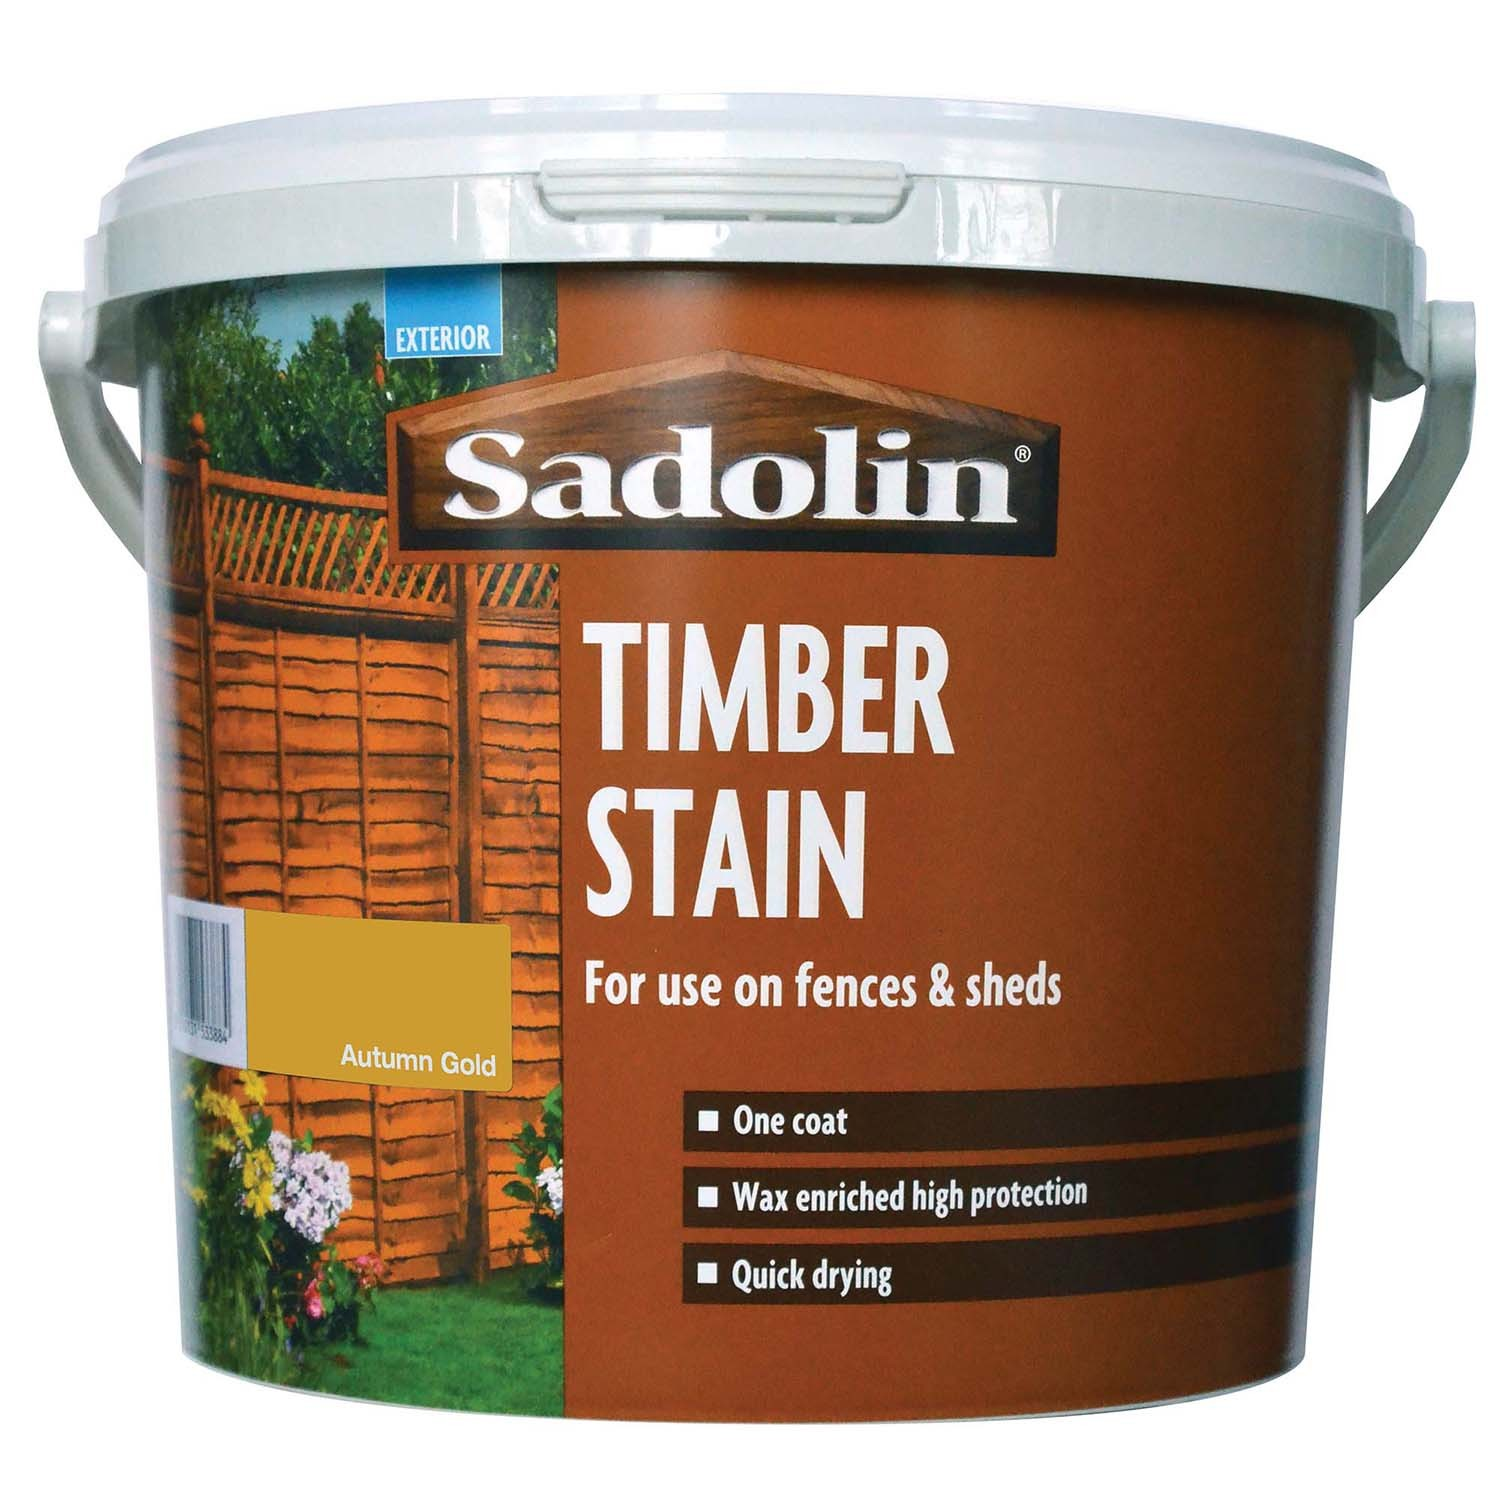 Sadolin 5L Timber Stain Paint, Autumn Gold